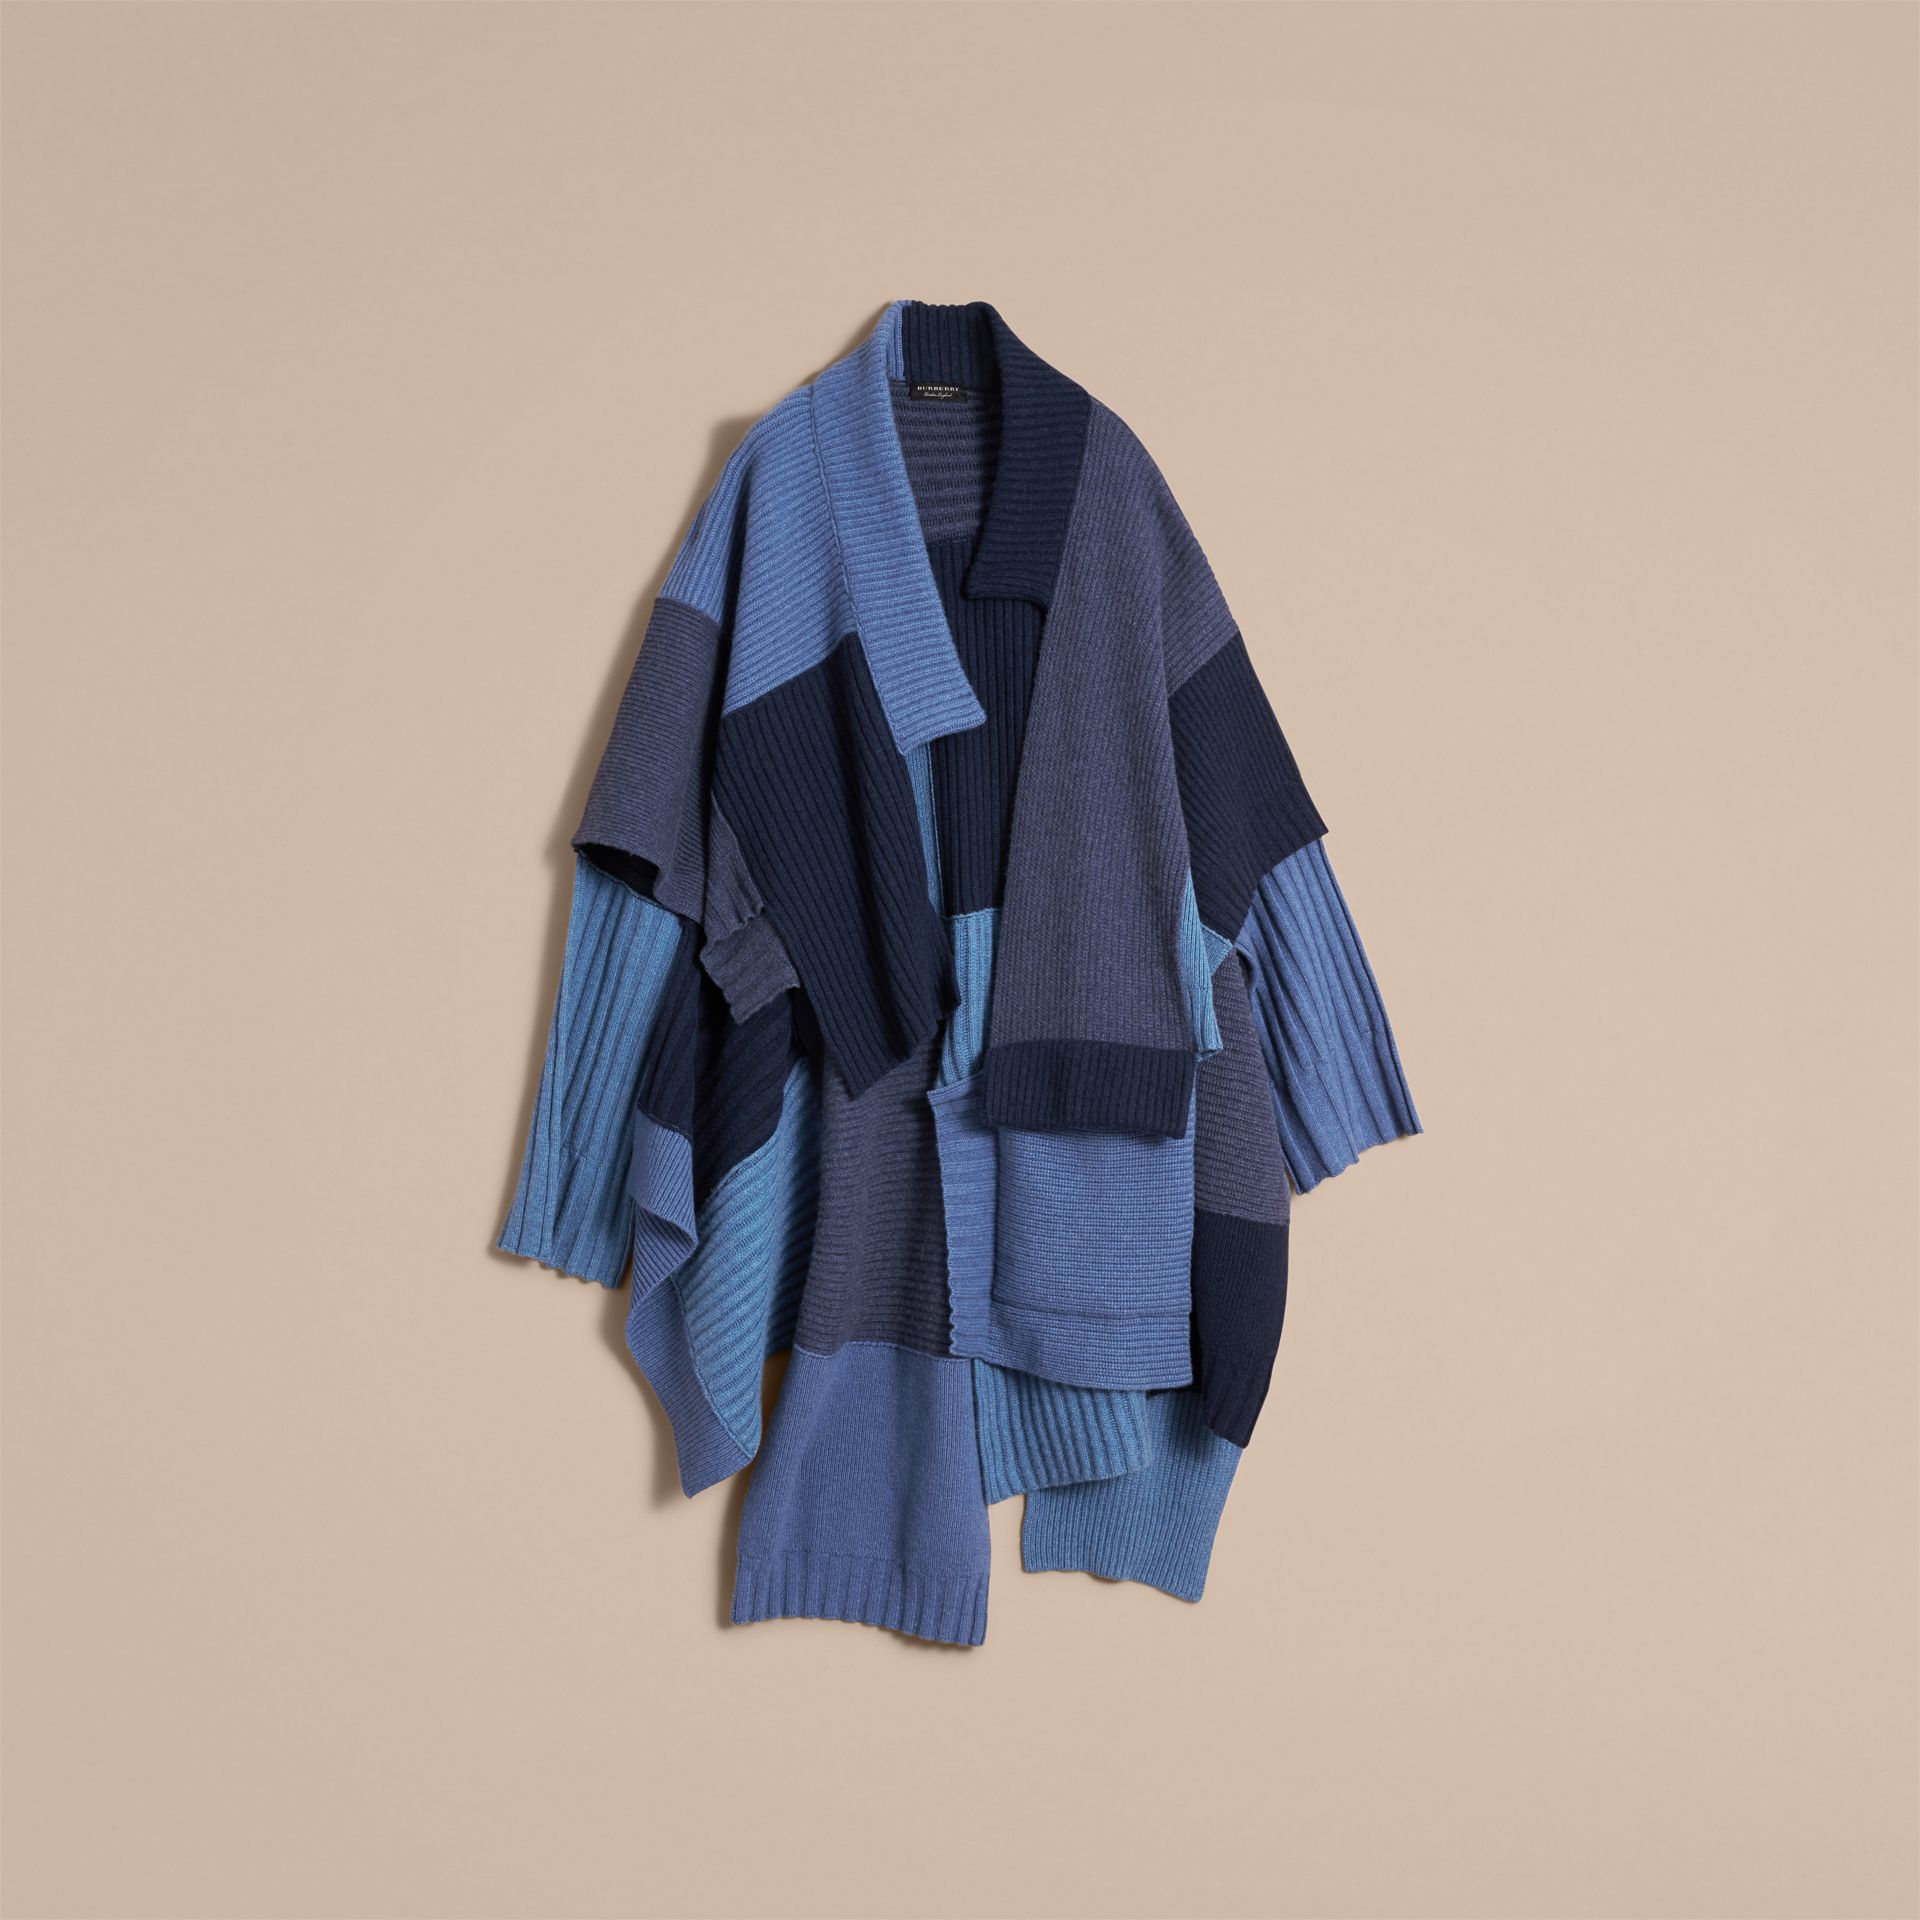 Wool Cashmere Patchwork Poncho in Carbon Blue - Women | Burberry - gallery image 4